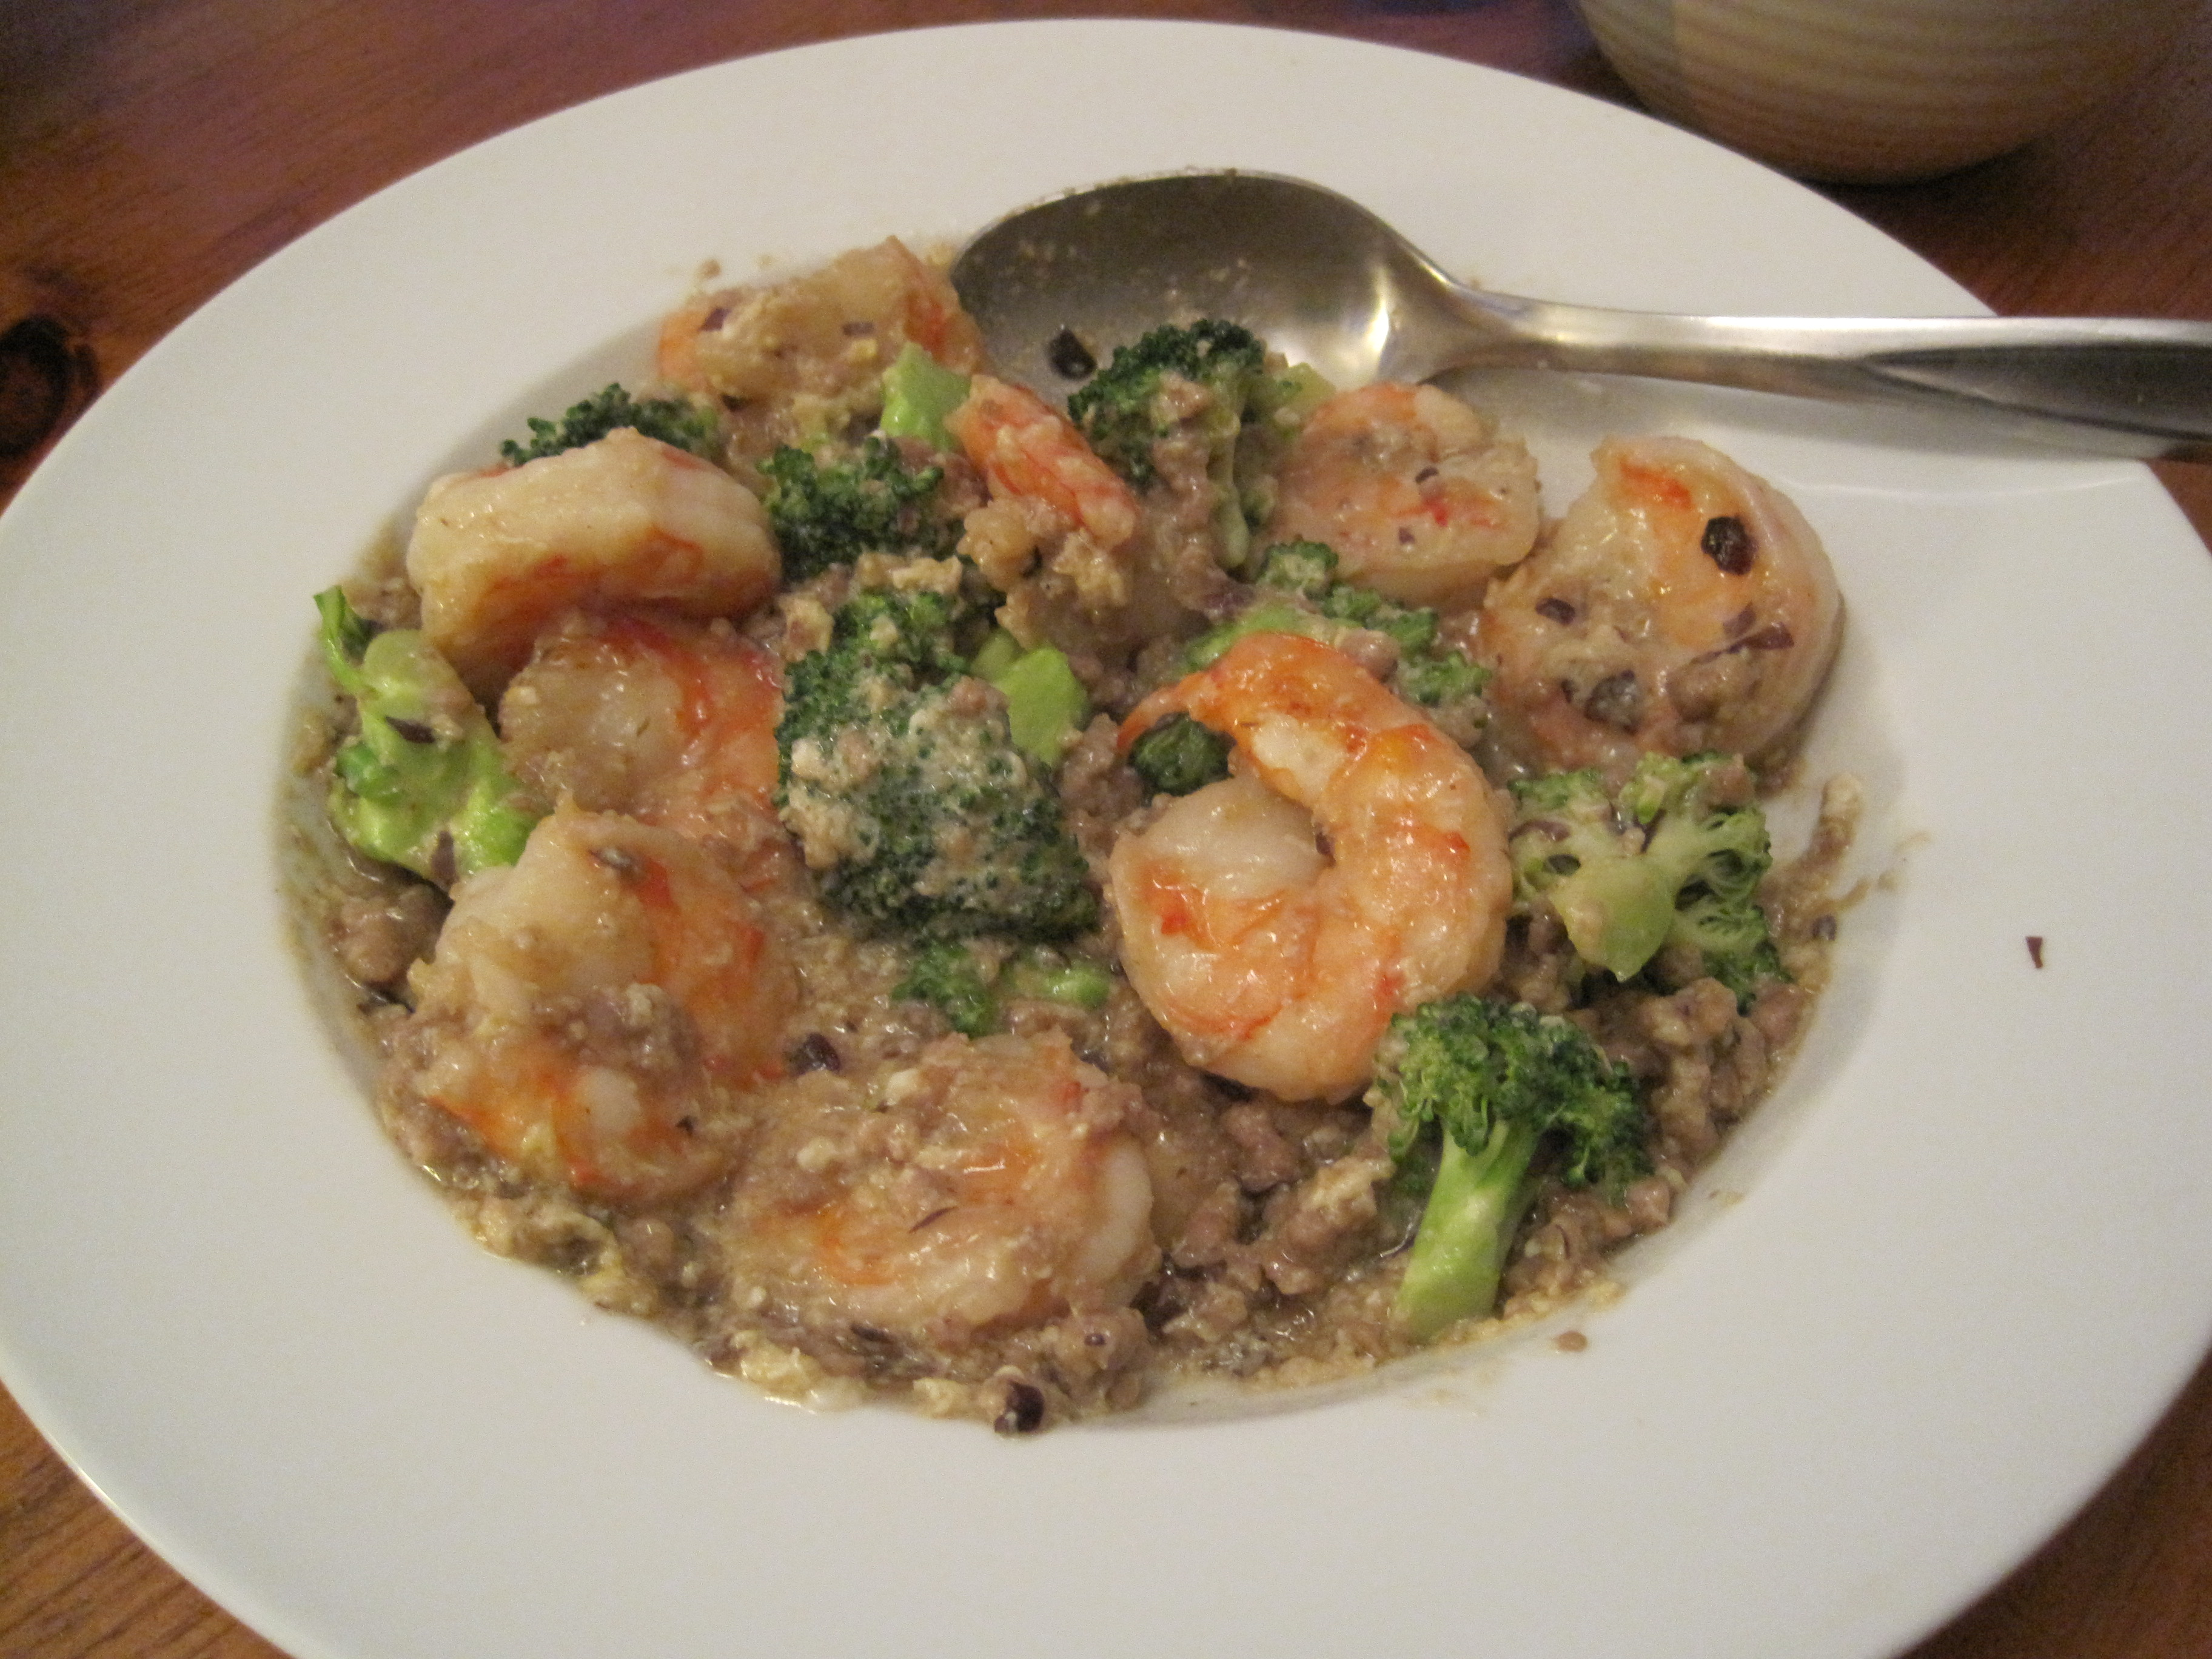 Gluten free chinese food part i the hungry novelist gluten free chinese food part i forumfinder Gallery